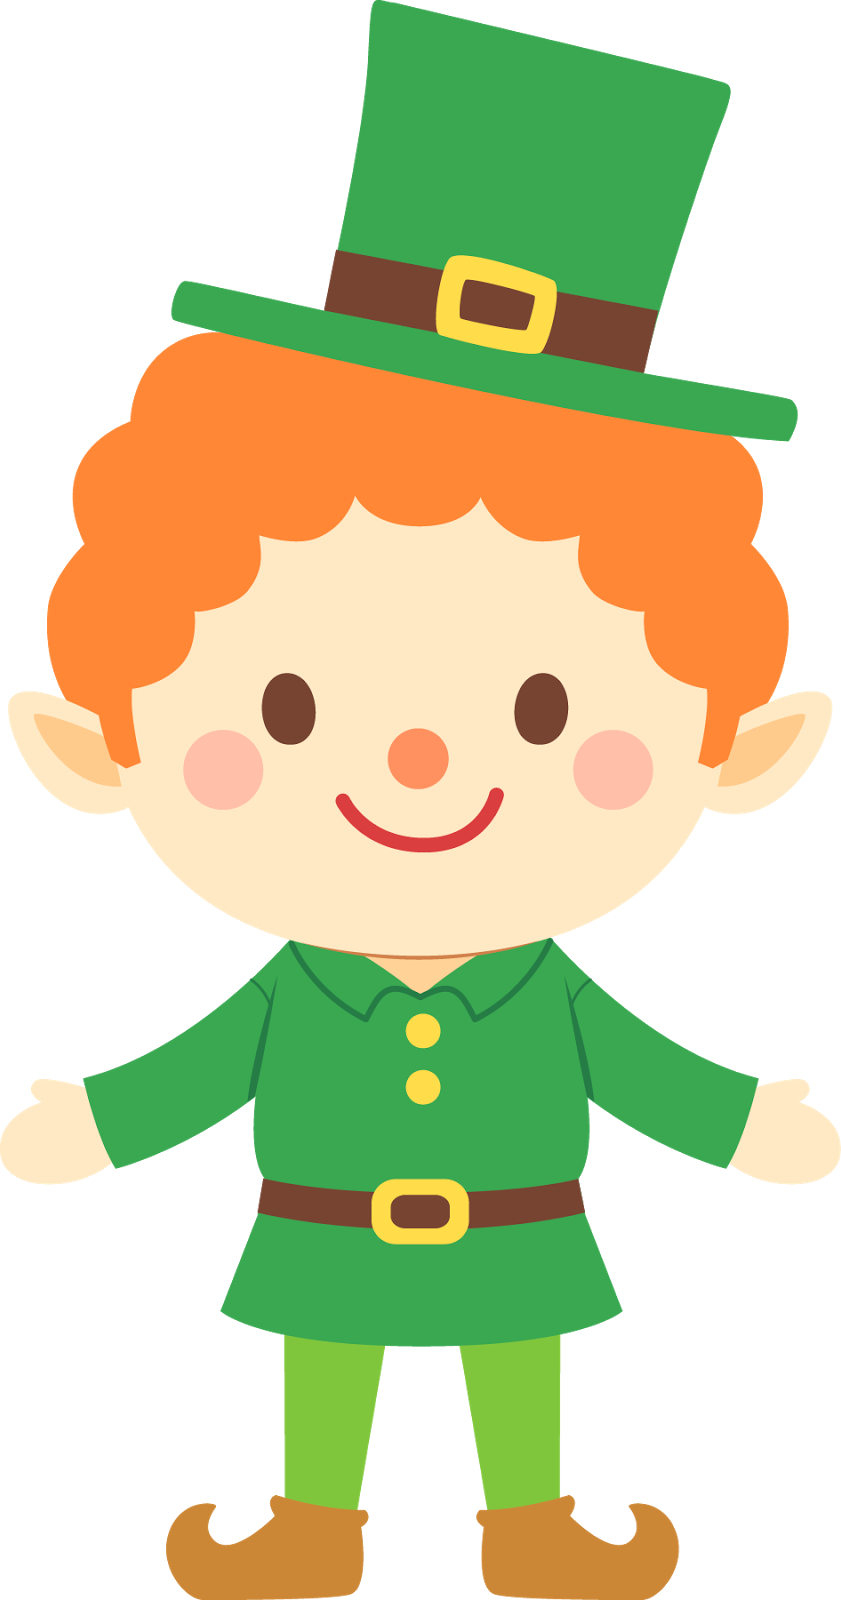 March cute leprechaun clipart image 2 - Girl Leprechaun PNG